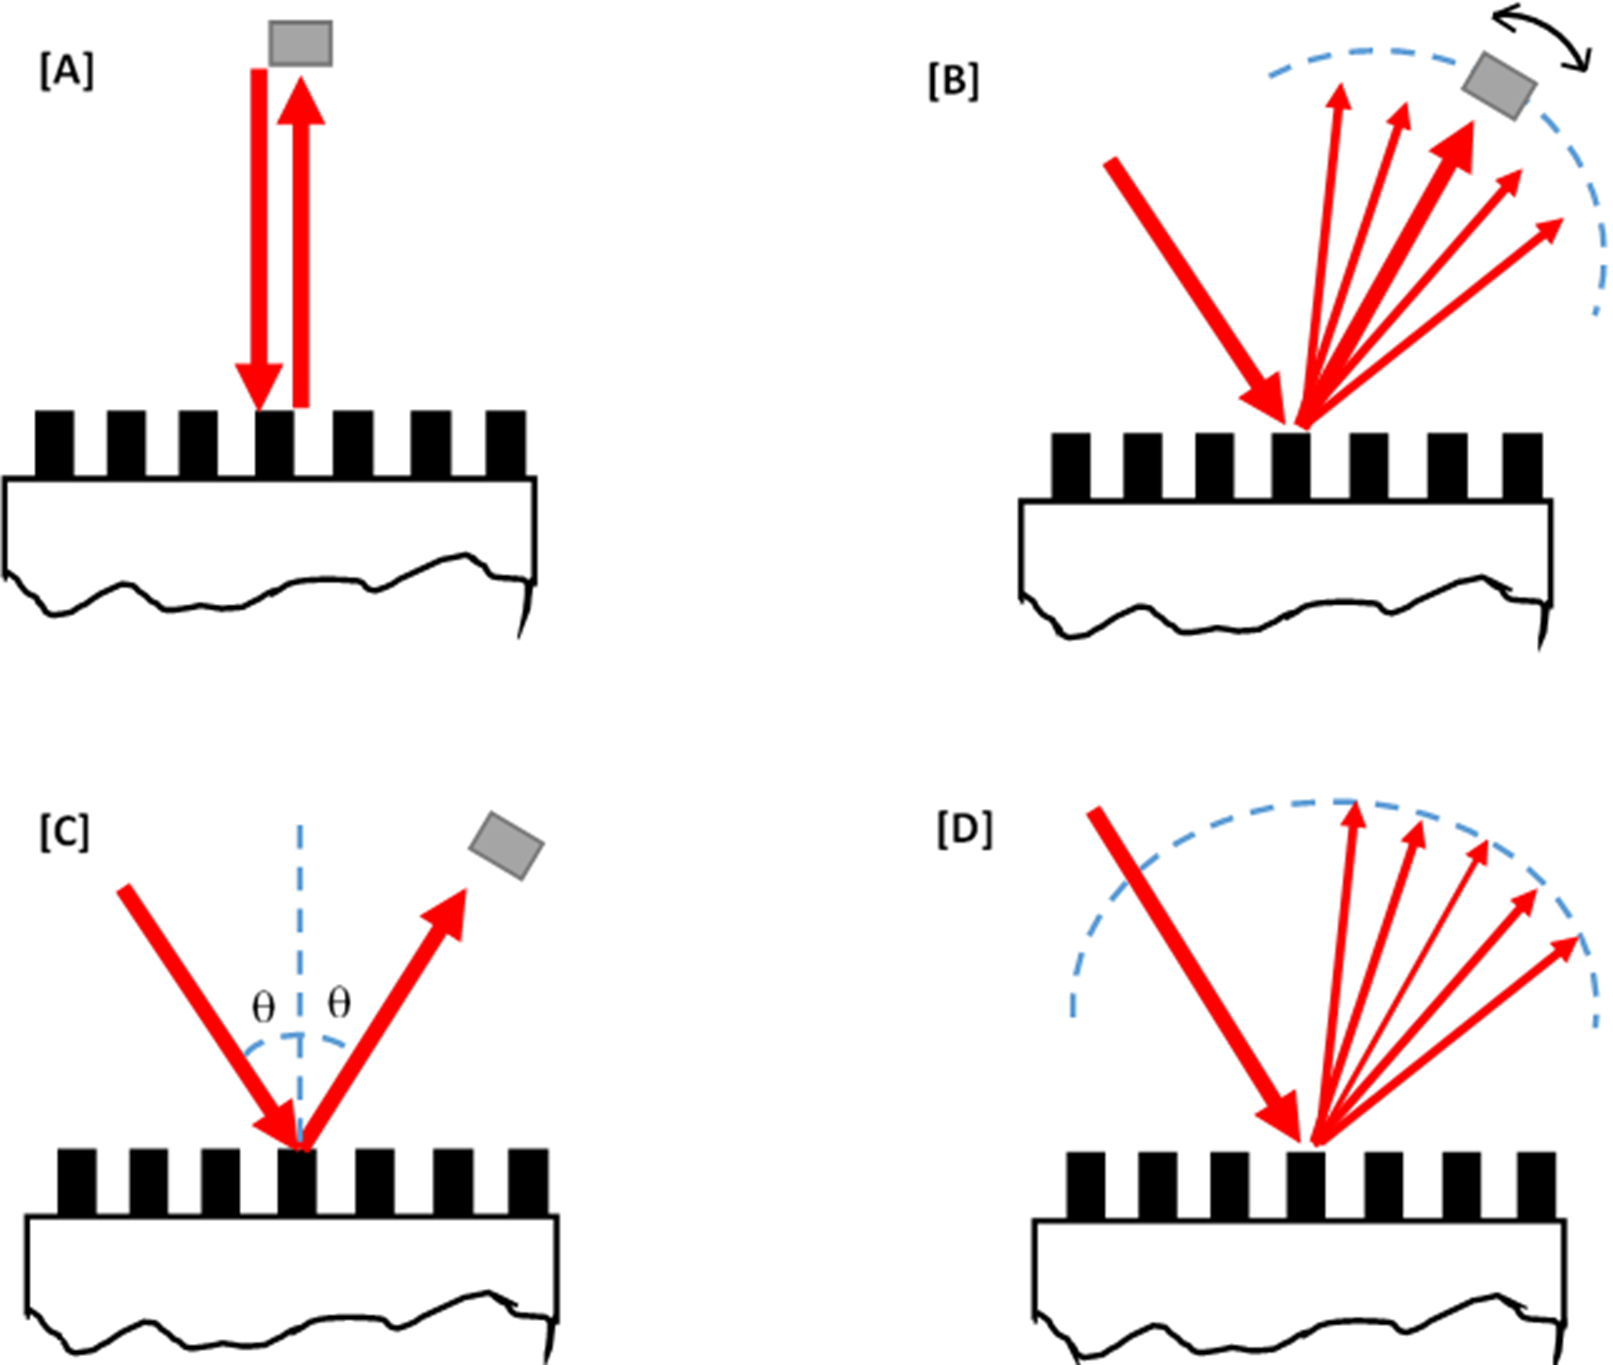 Illustrating optical techniques.